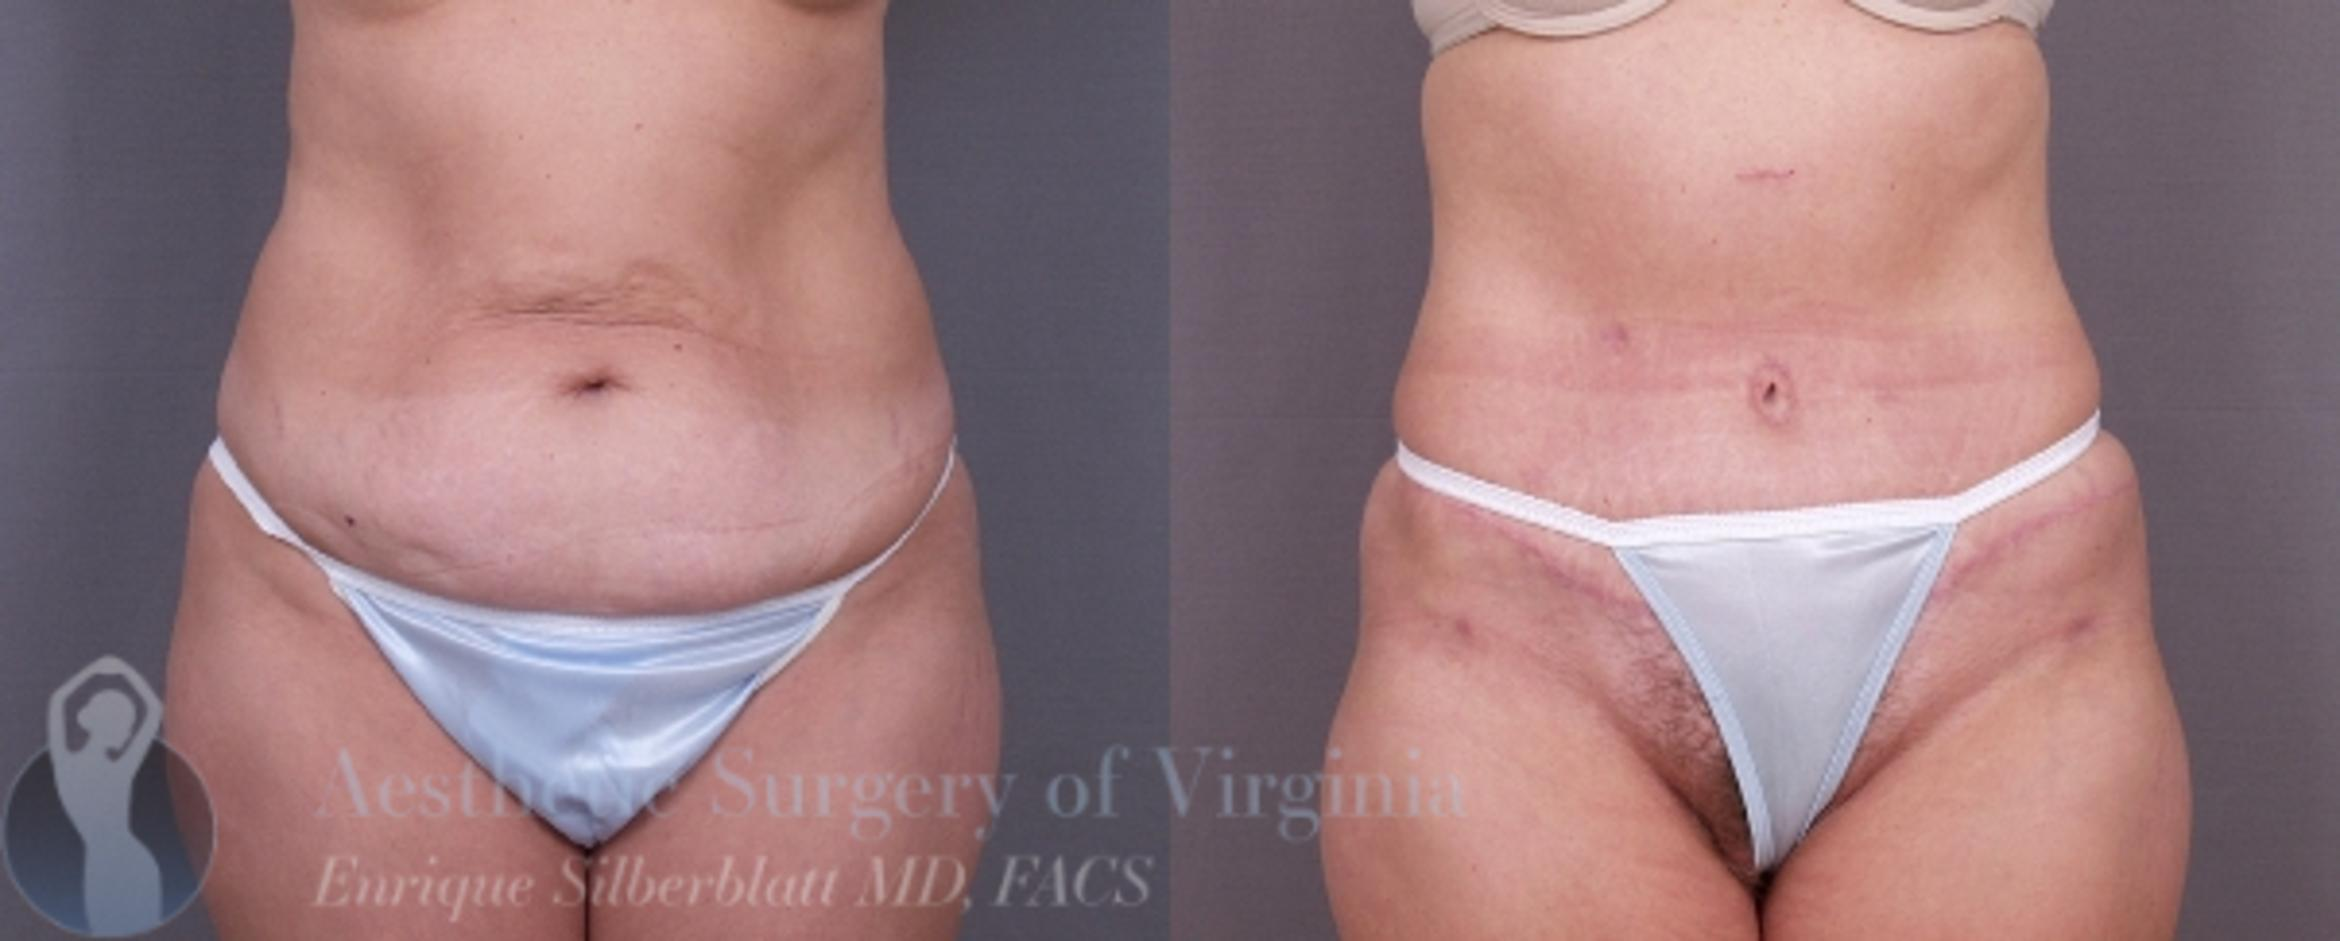 Tummy Tuck Case 26 Before & After View #1 | Roanoke, VA | Aesthetic Surgery of Virginia: Enrique Silberblatt, MD